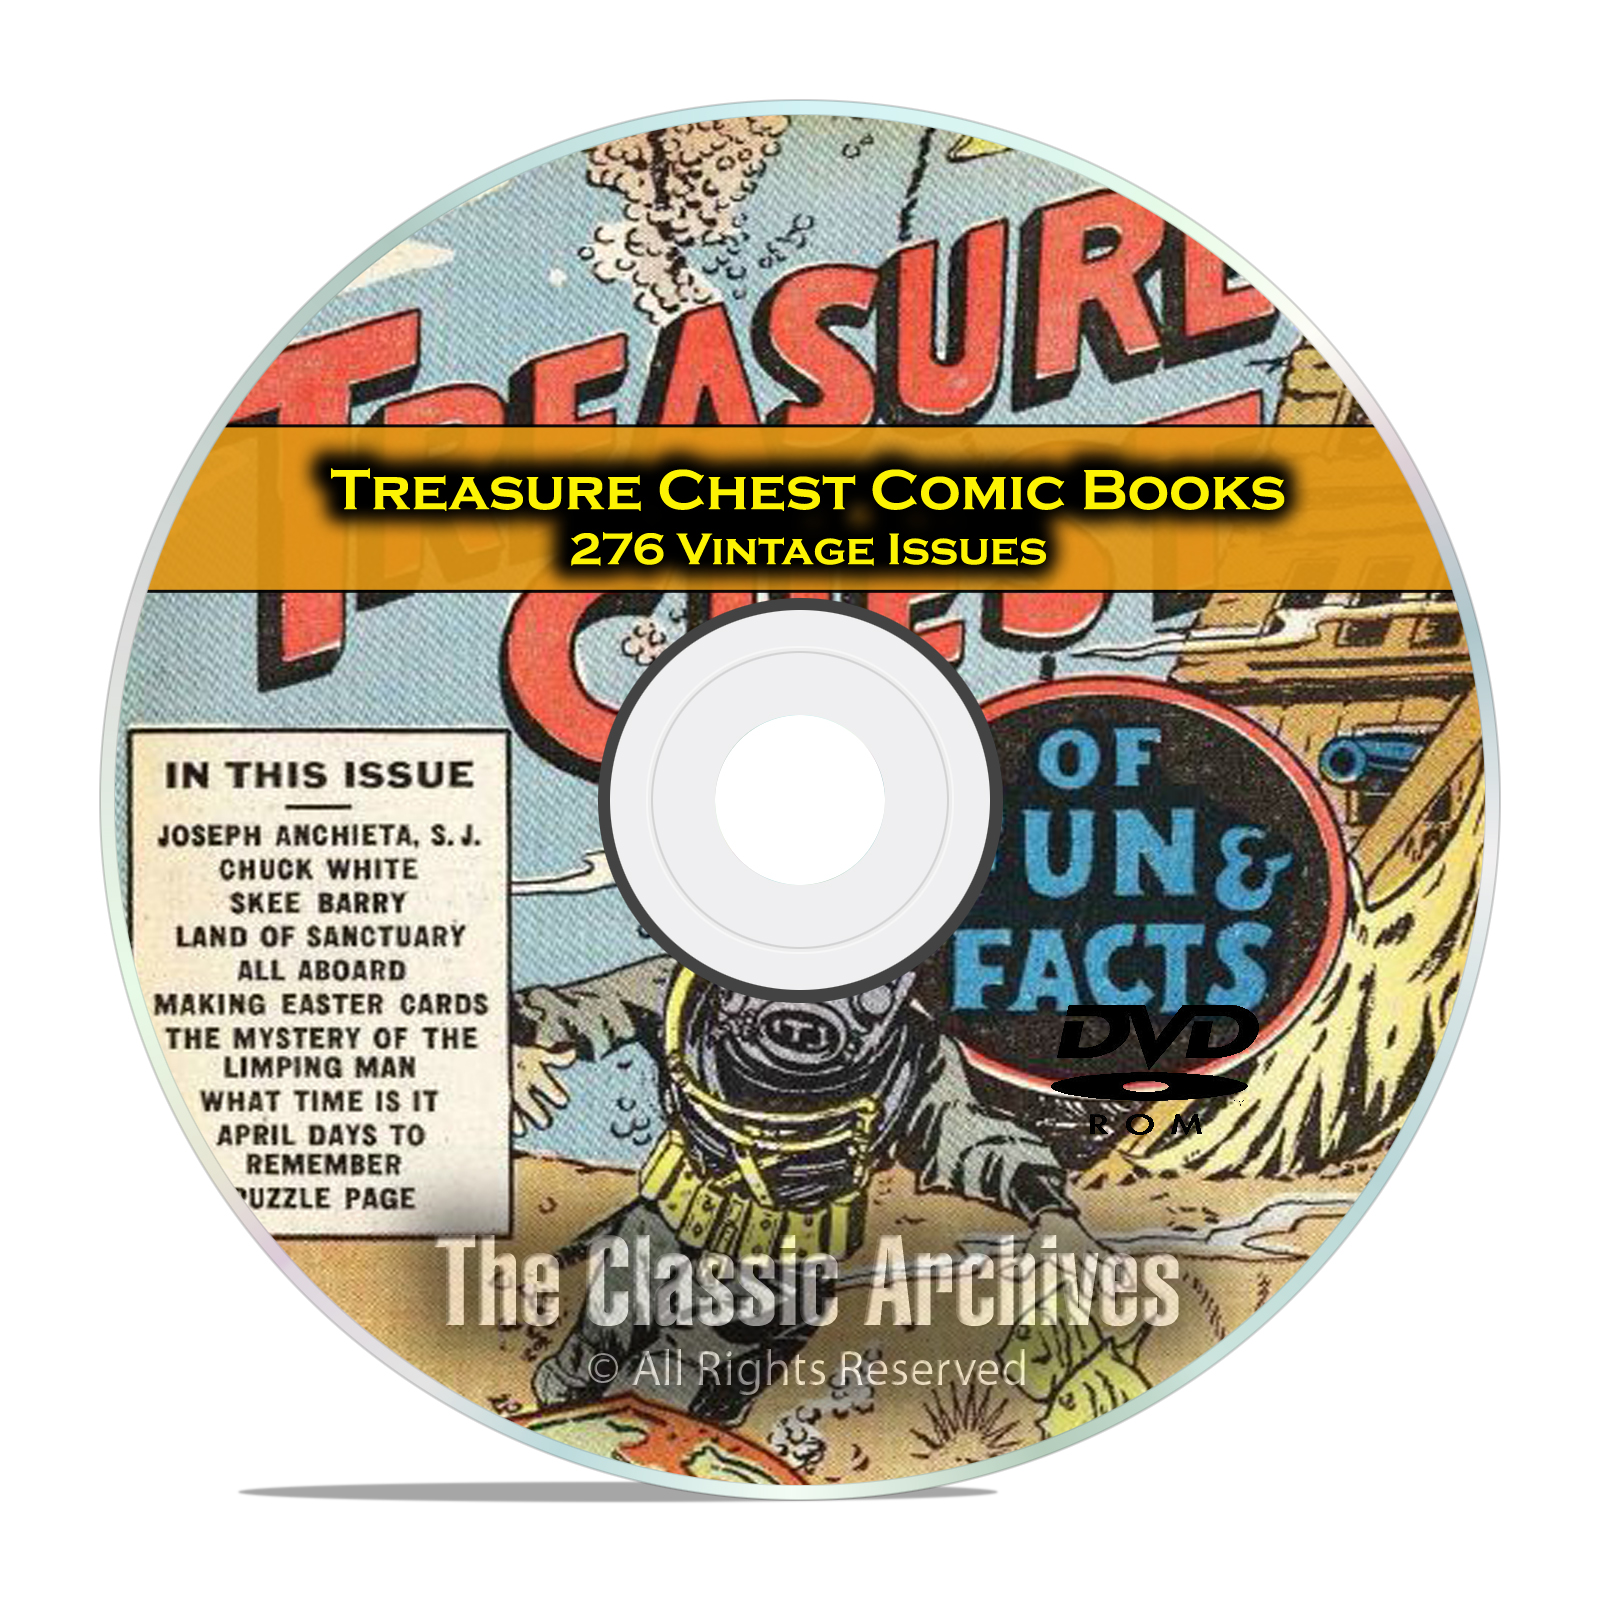 Treasure Chest Comic Books, Catechetical Guild, 276 Golden Age Comics DVD - Click Image to Close